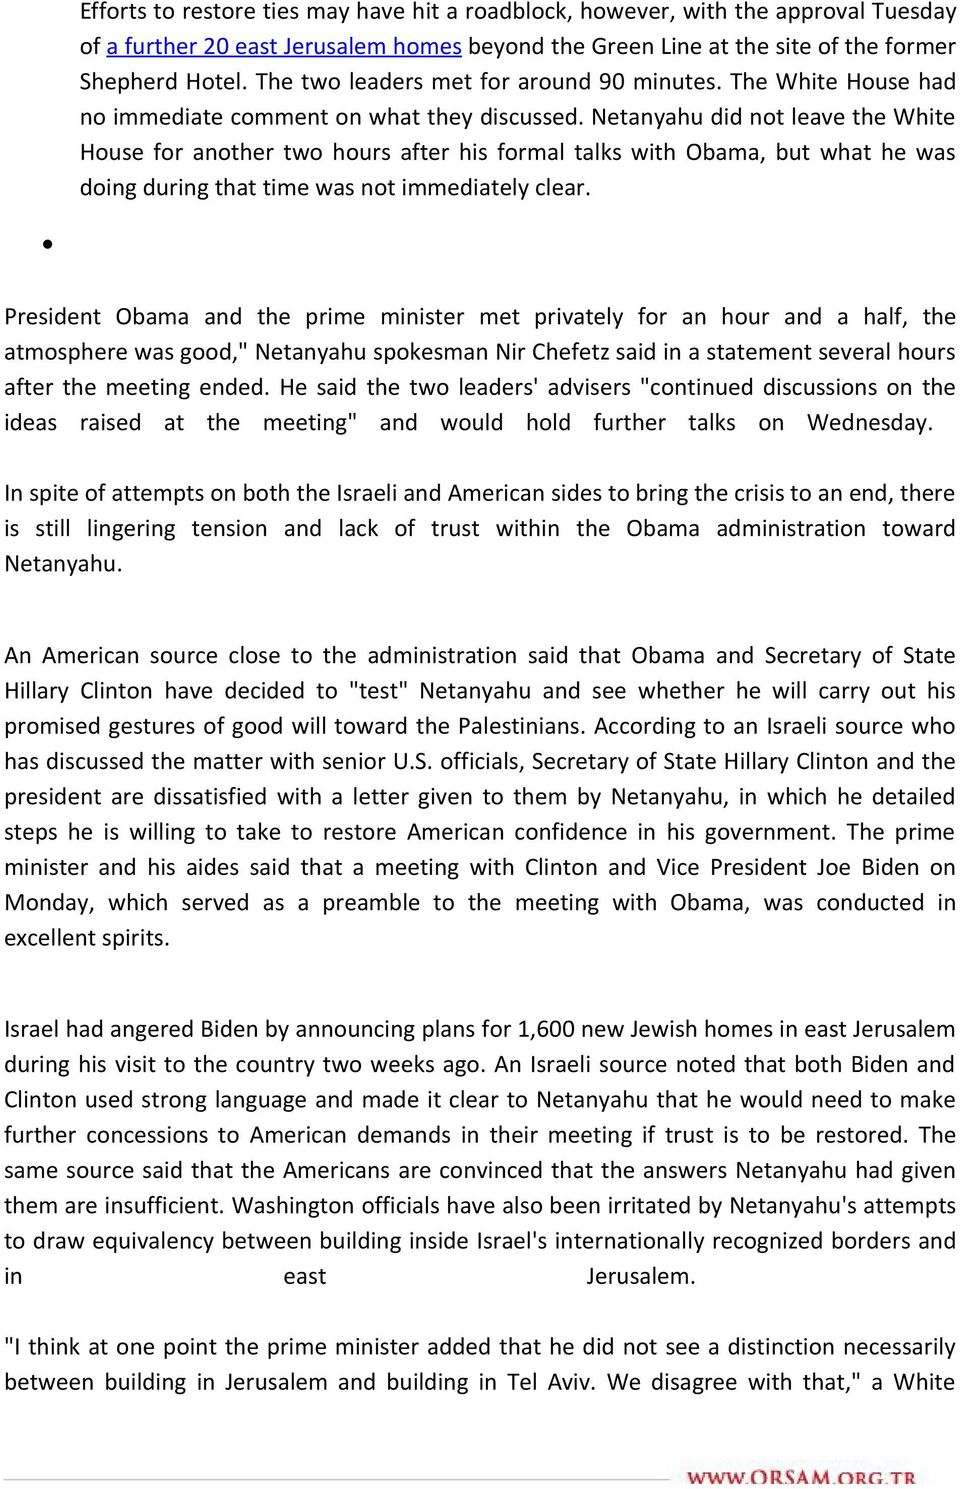 Netanyahu did not leave the White House for another two hours after his formal talks with Obama, but what he was doing during that time was not immediately clear.